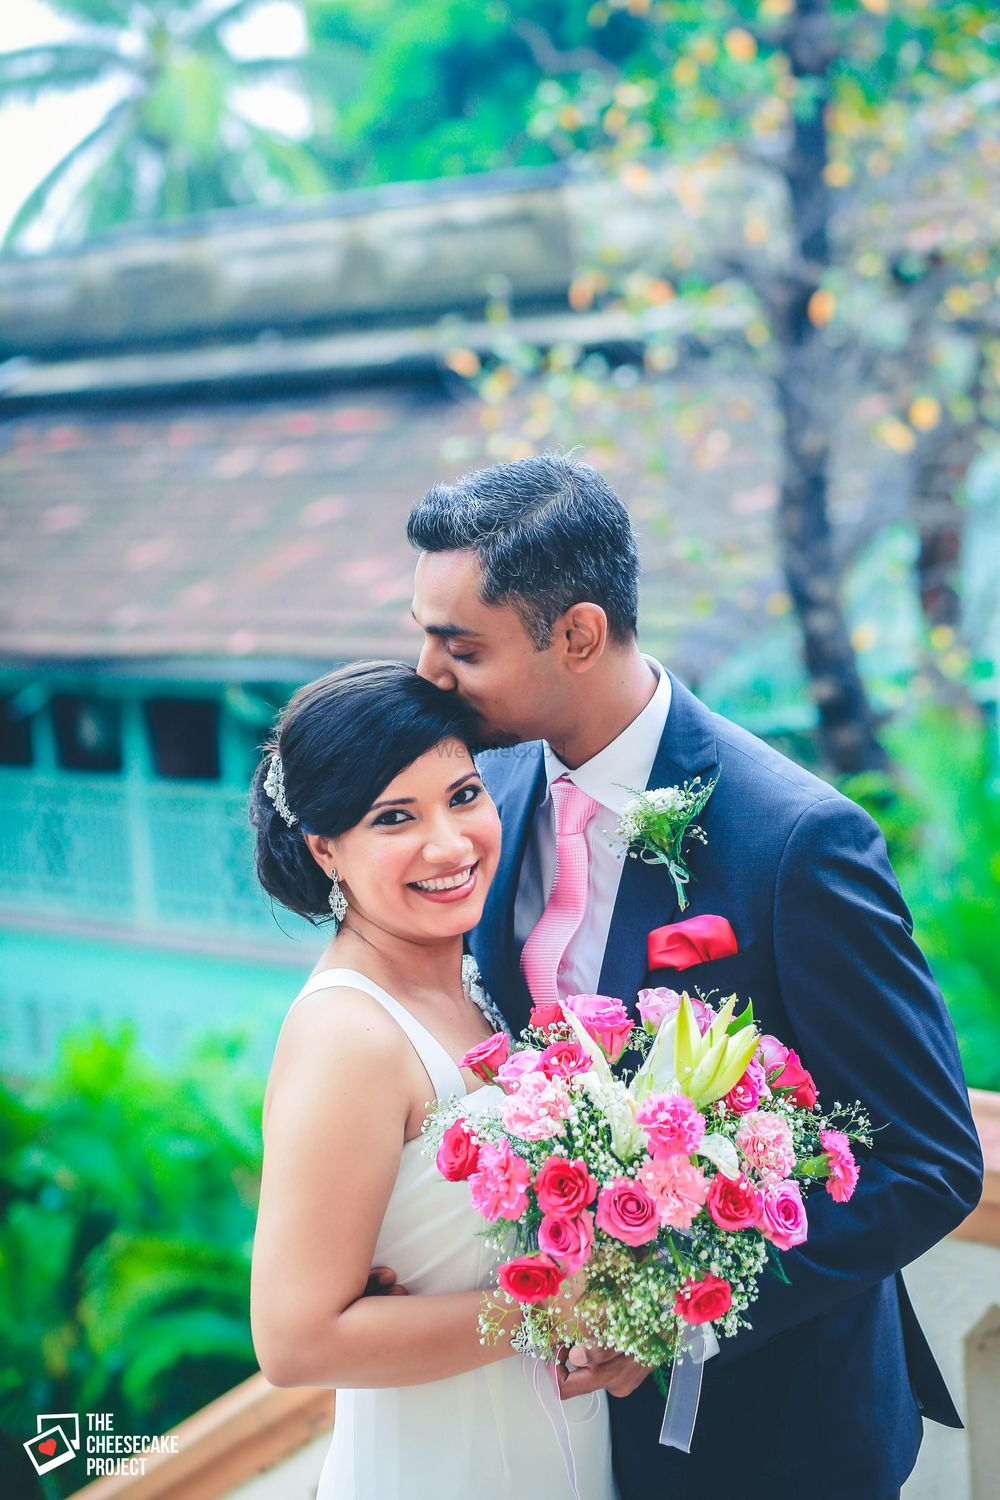 Photo From Sonia + Rohit - By The Cheesecake Project